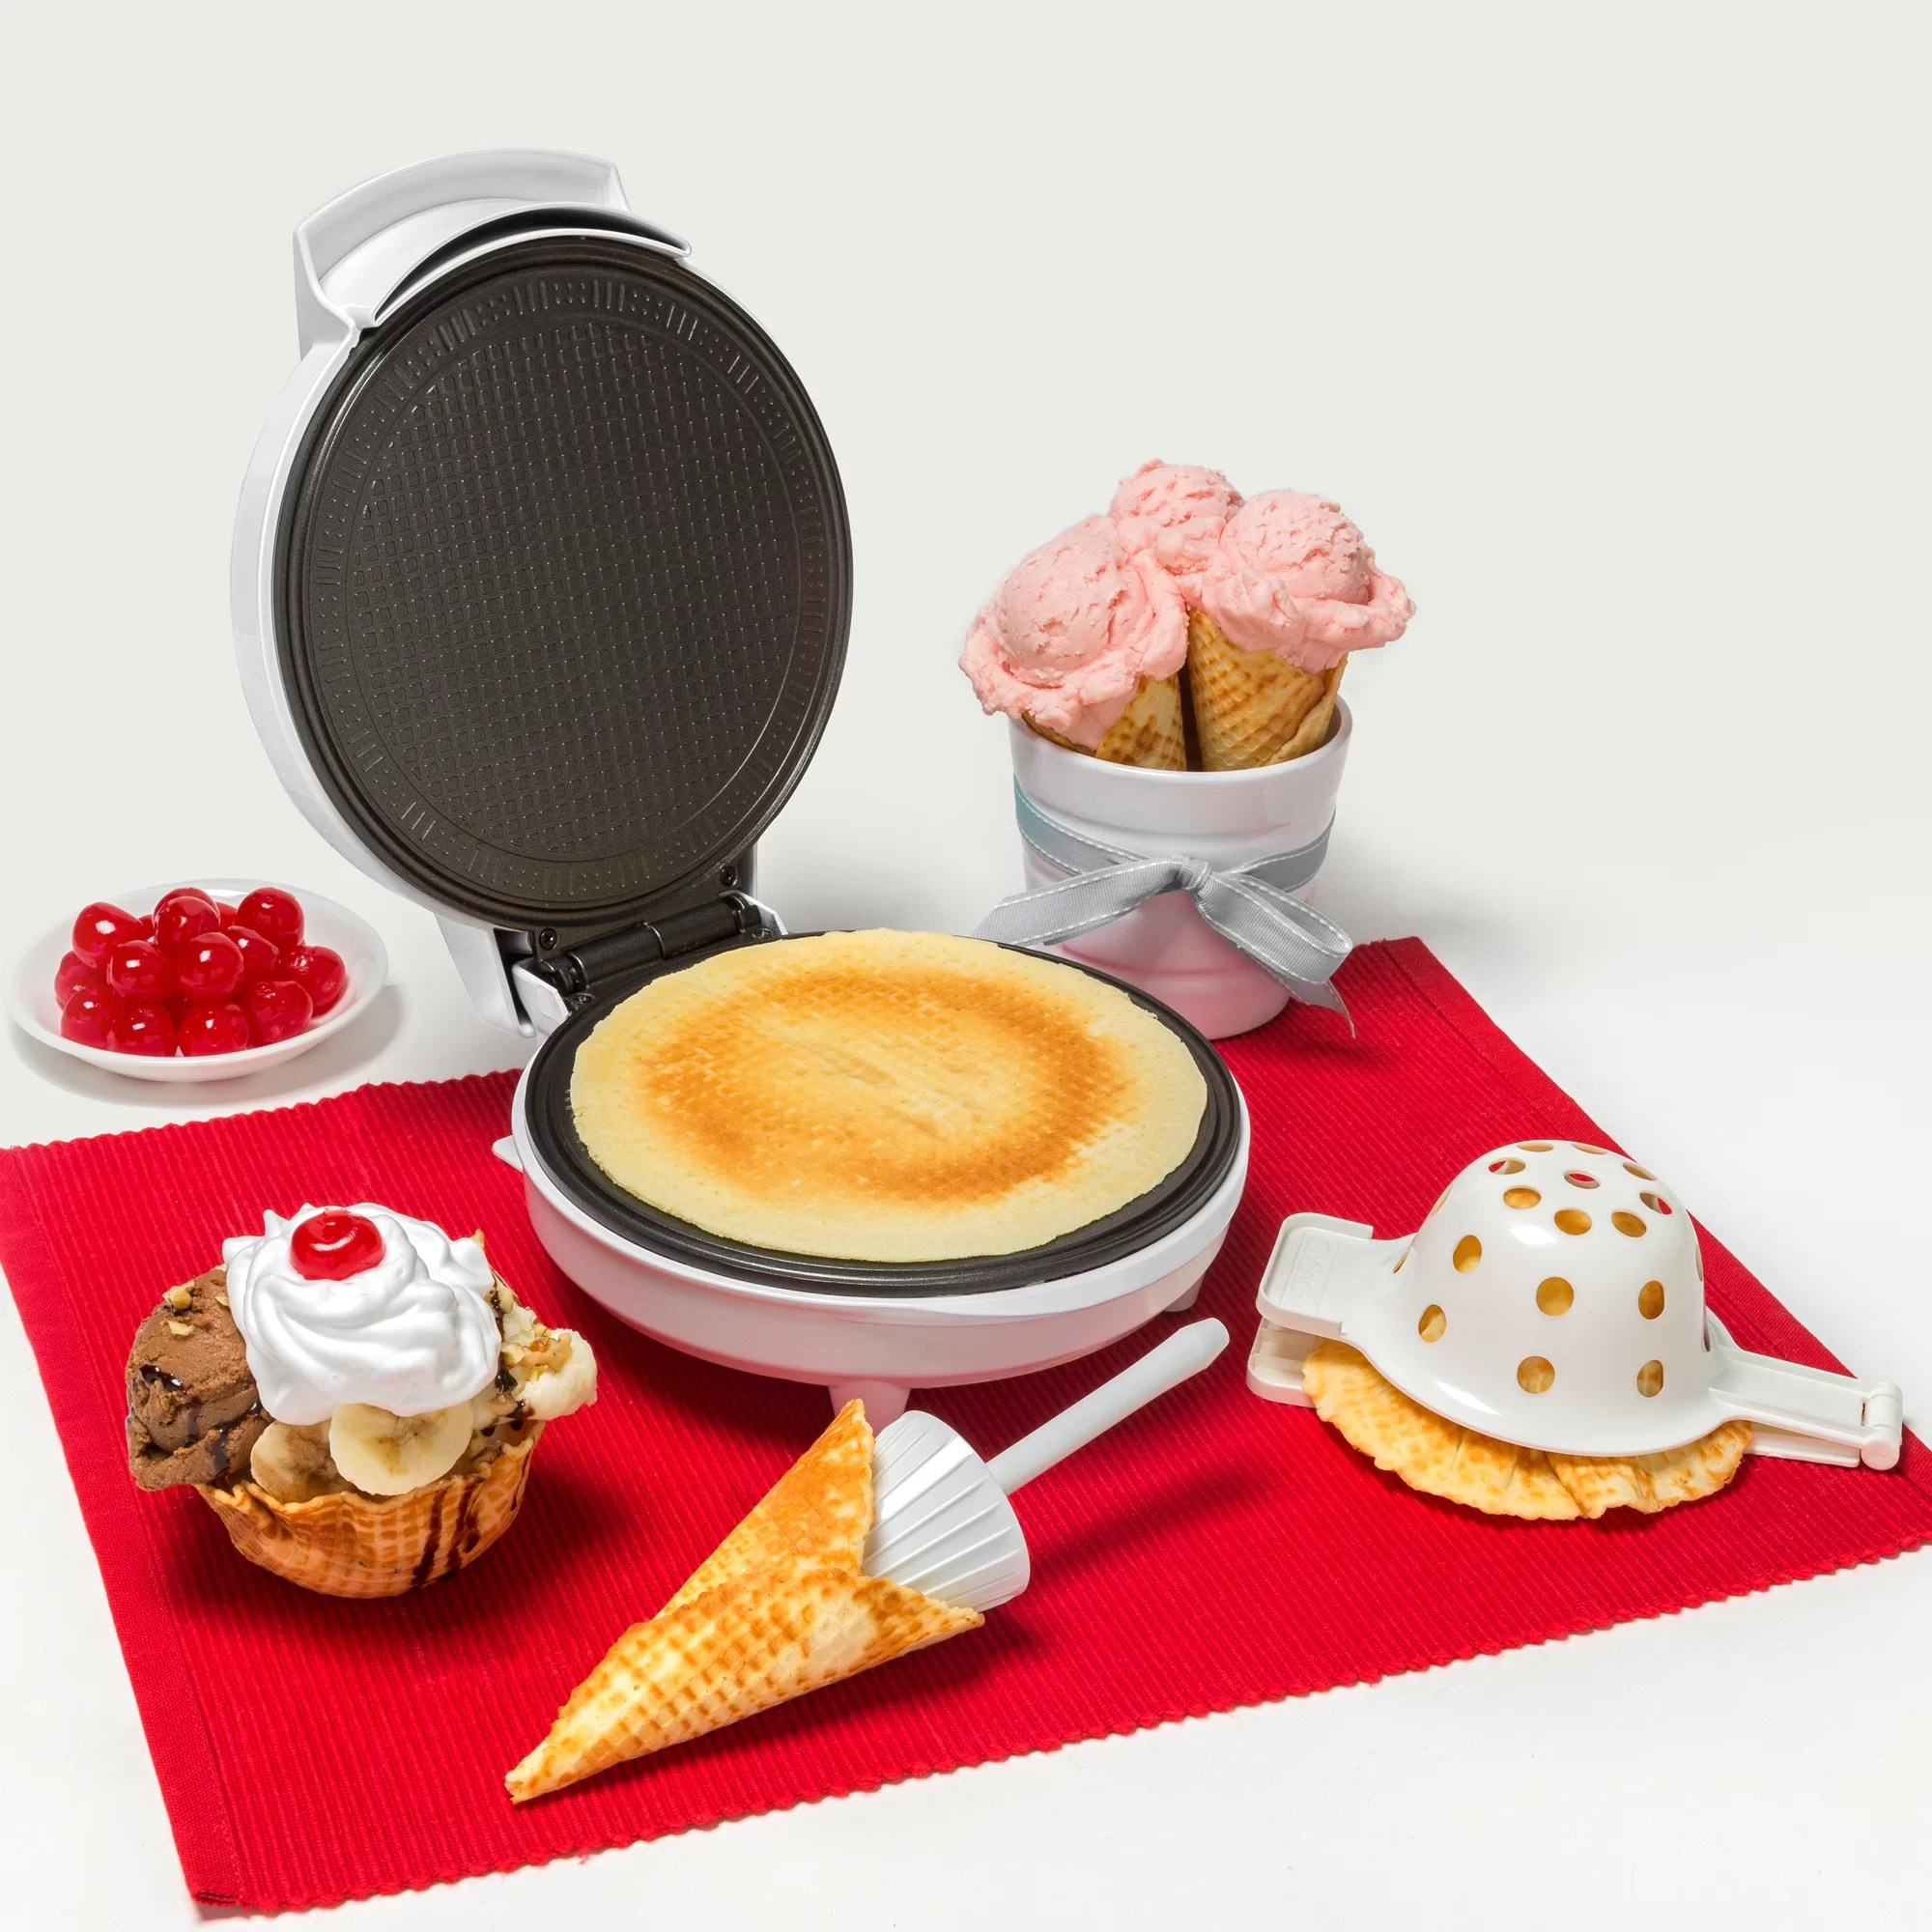 Cucinapro Multi-baker With Interchangeable Plates Cucinapro Waffle Cone And Bowl Maker